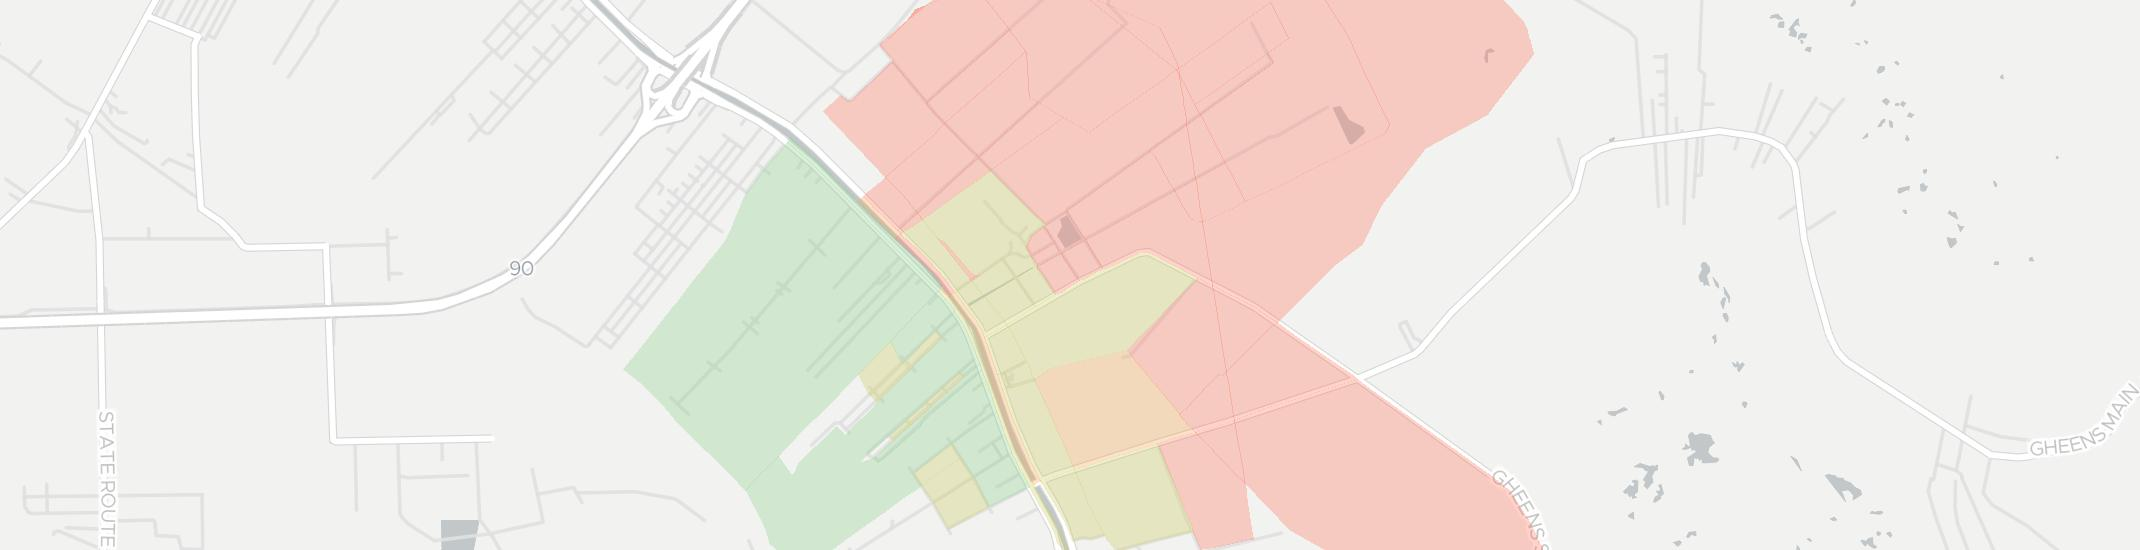 Mathews Internet Competition Map. Click for interactive map.